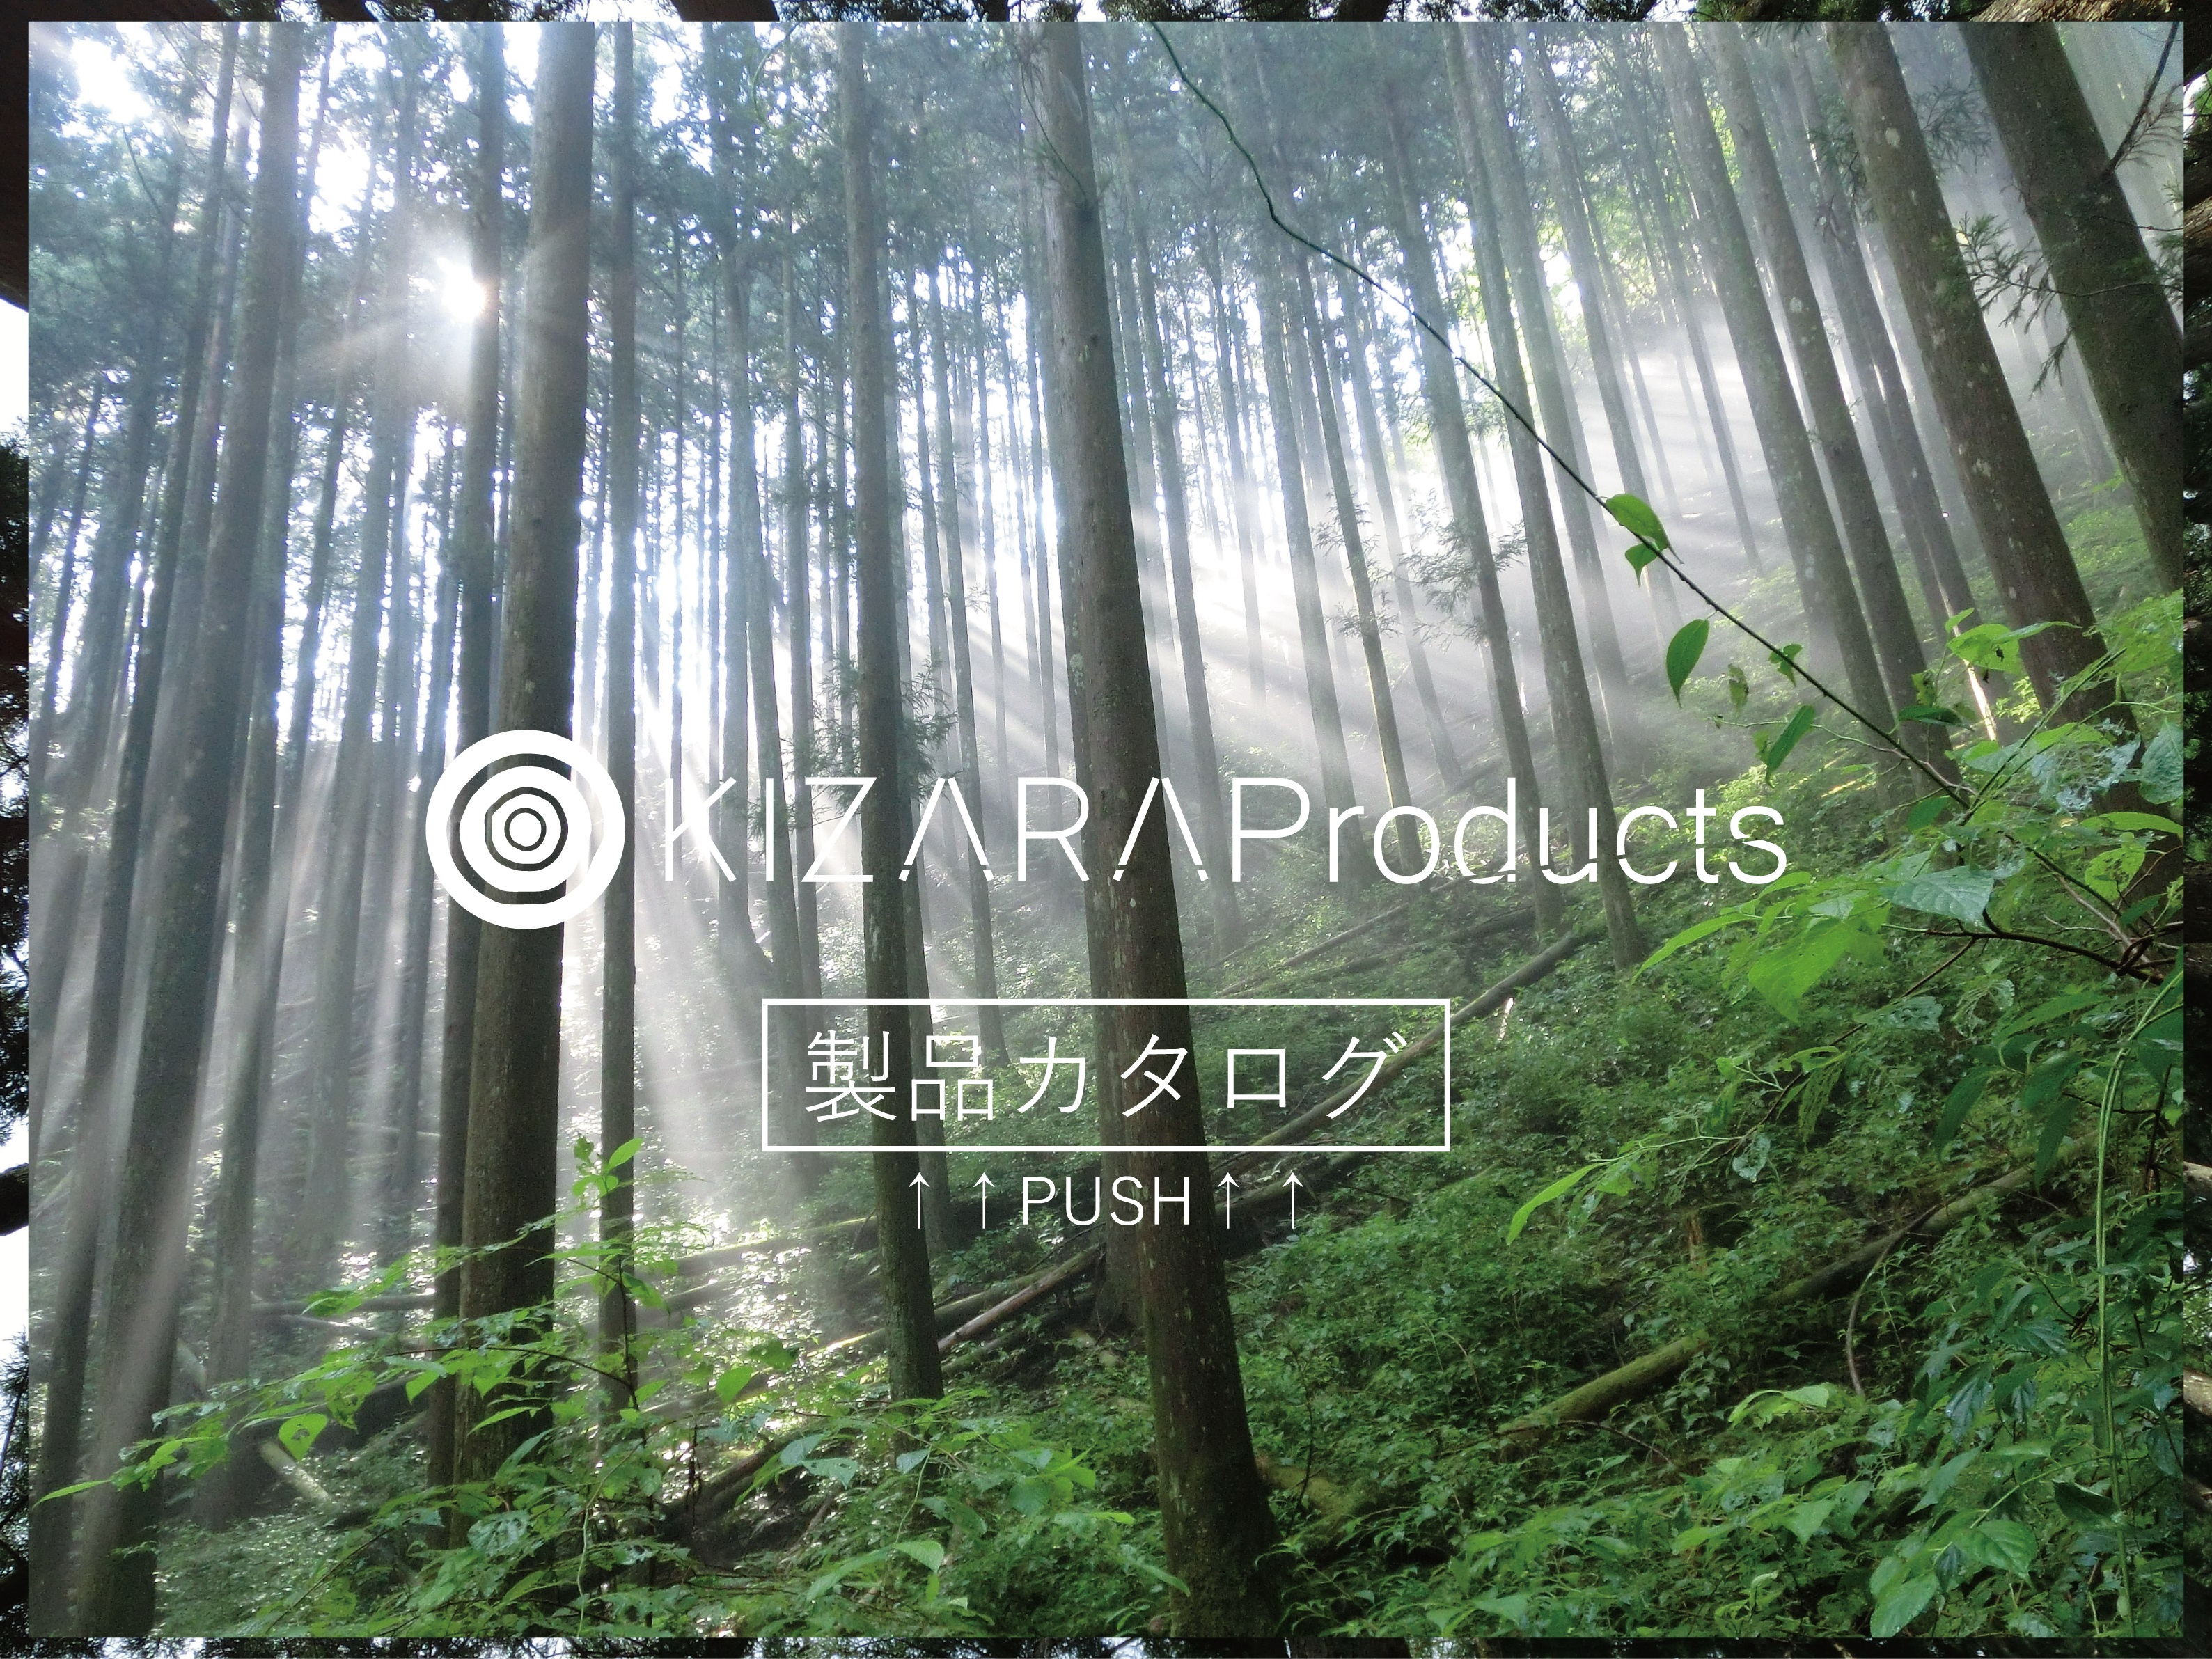 KIZARA Products